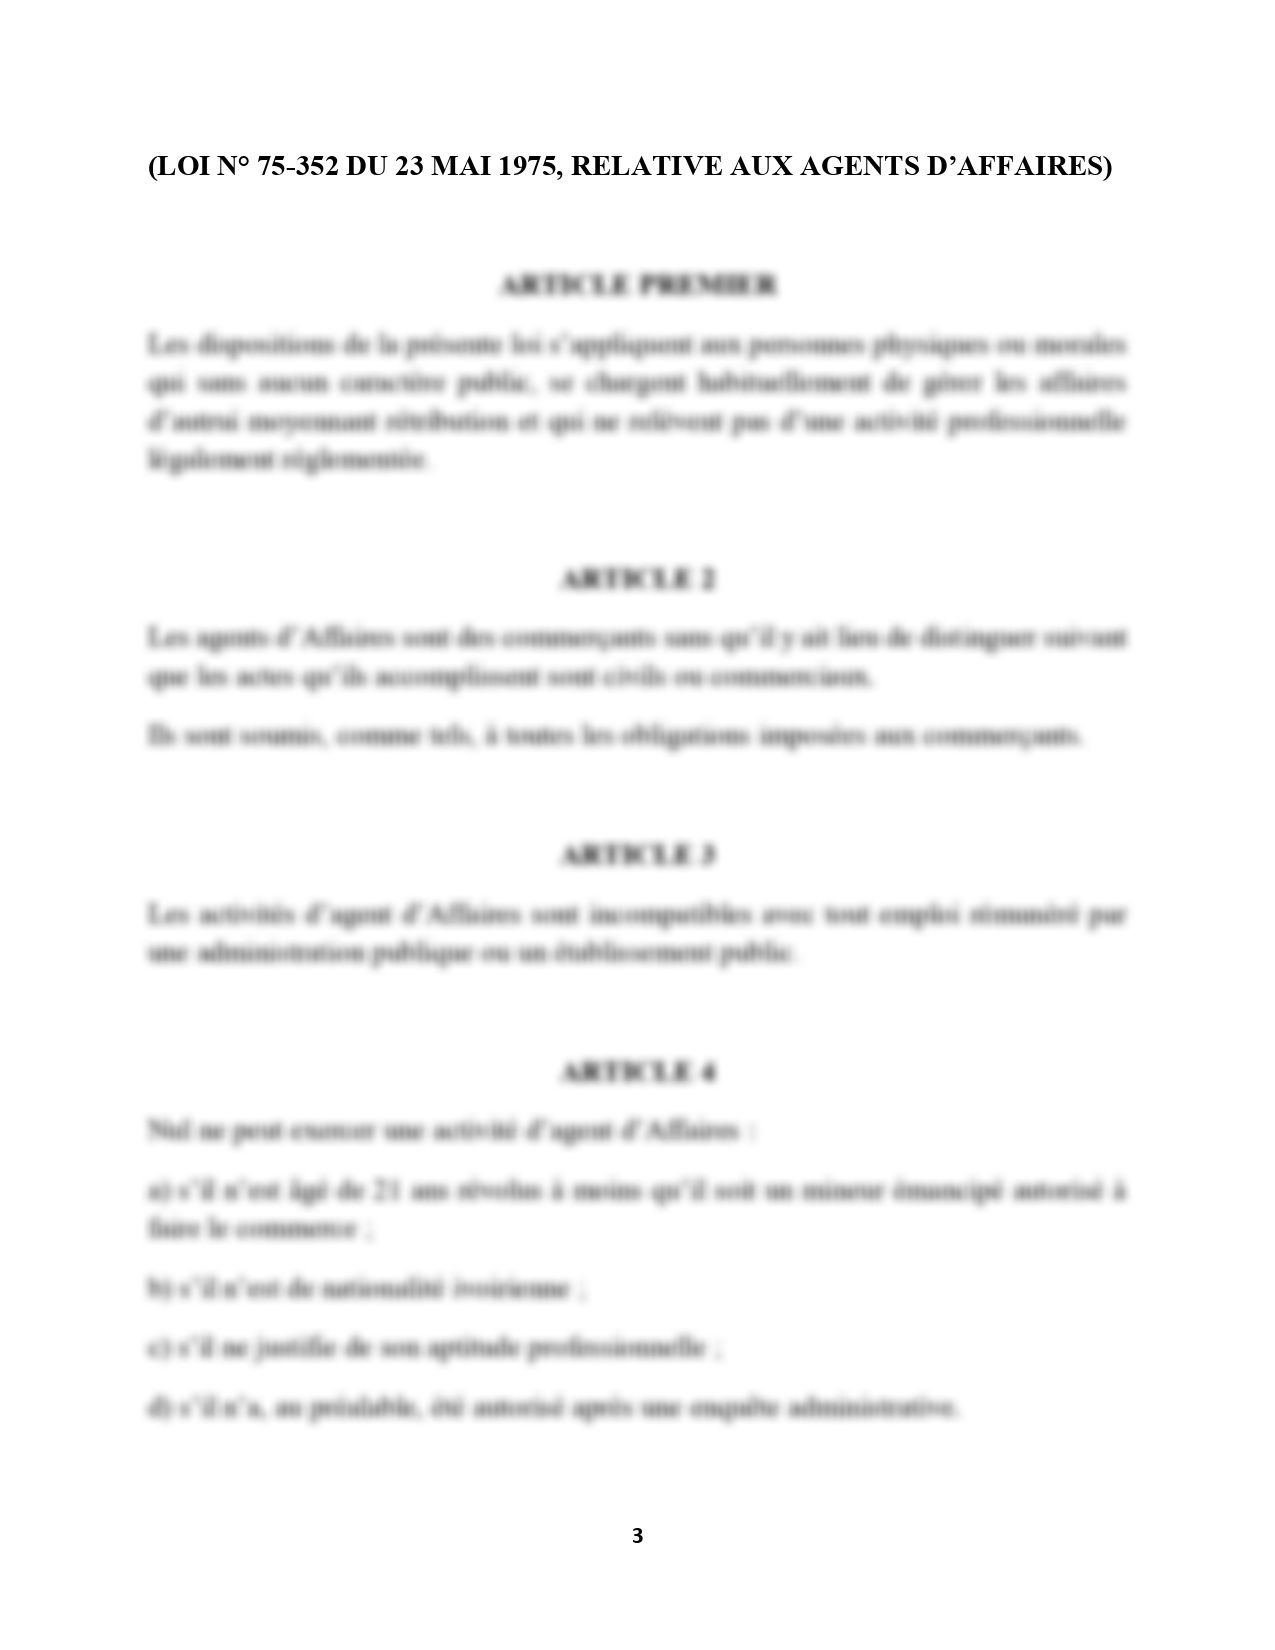 La profession d'agent d'affaire judiciaire -cote d'ivoire_compressed-1-3_page-0003_censored